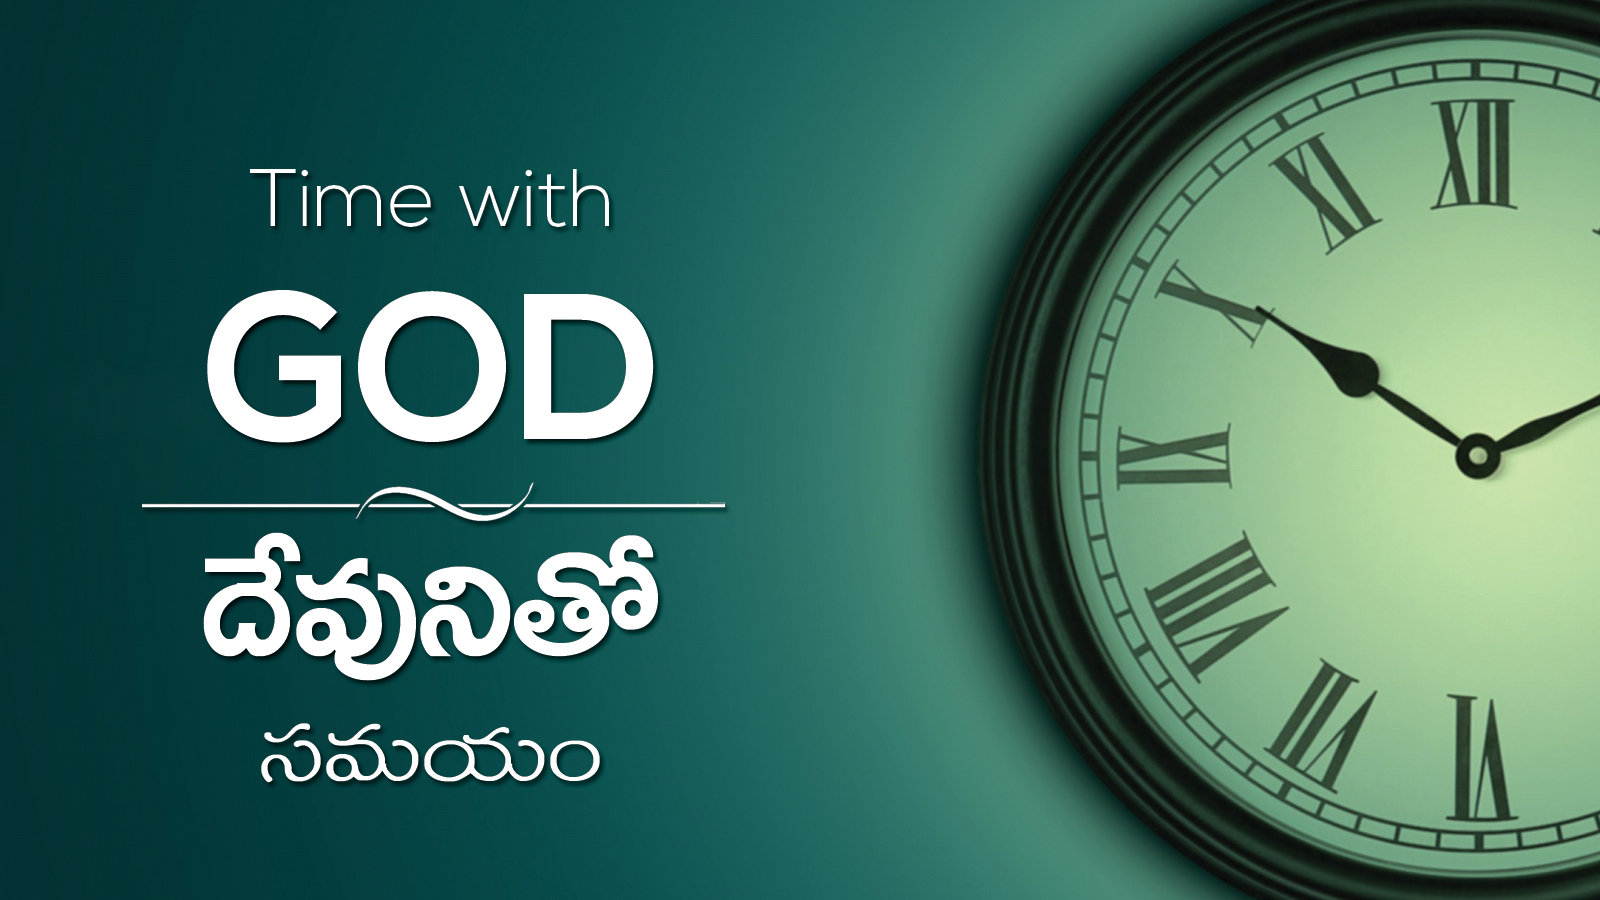 Time with God (A328)